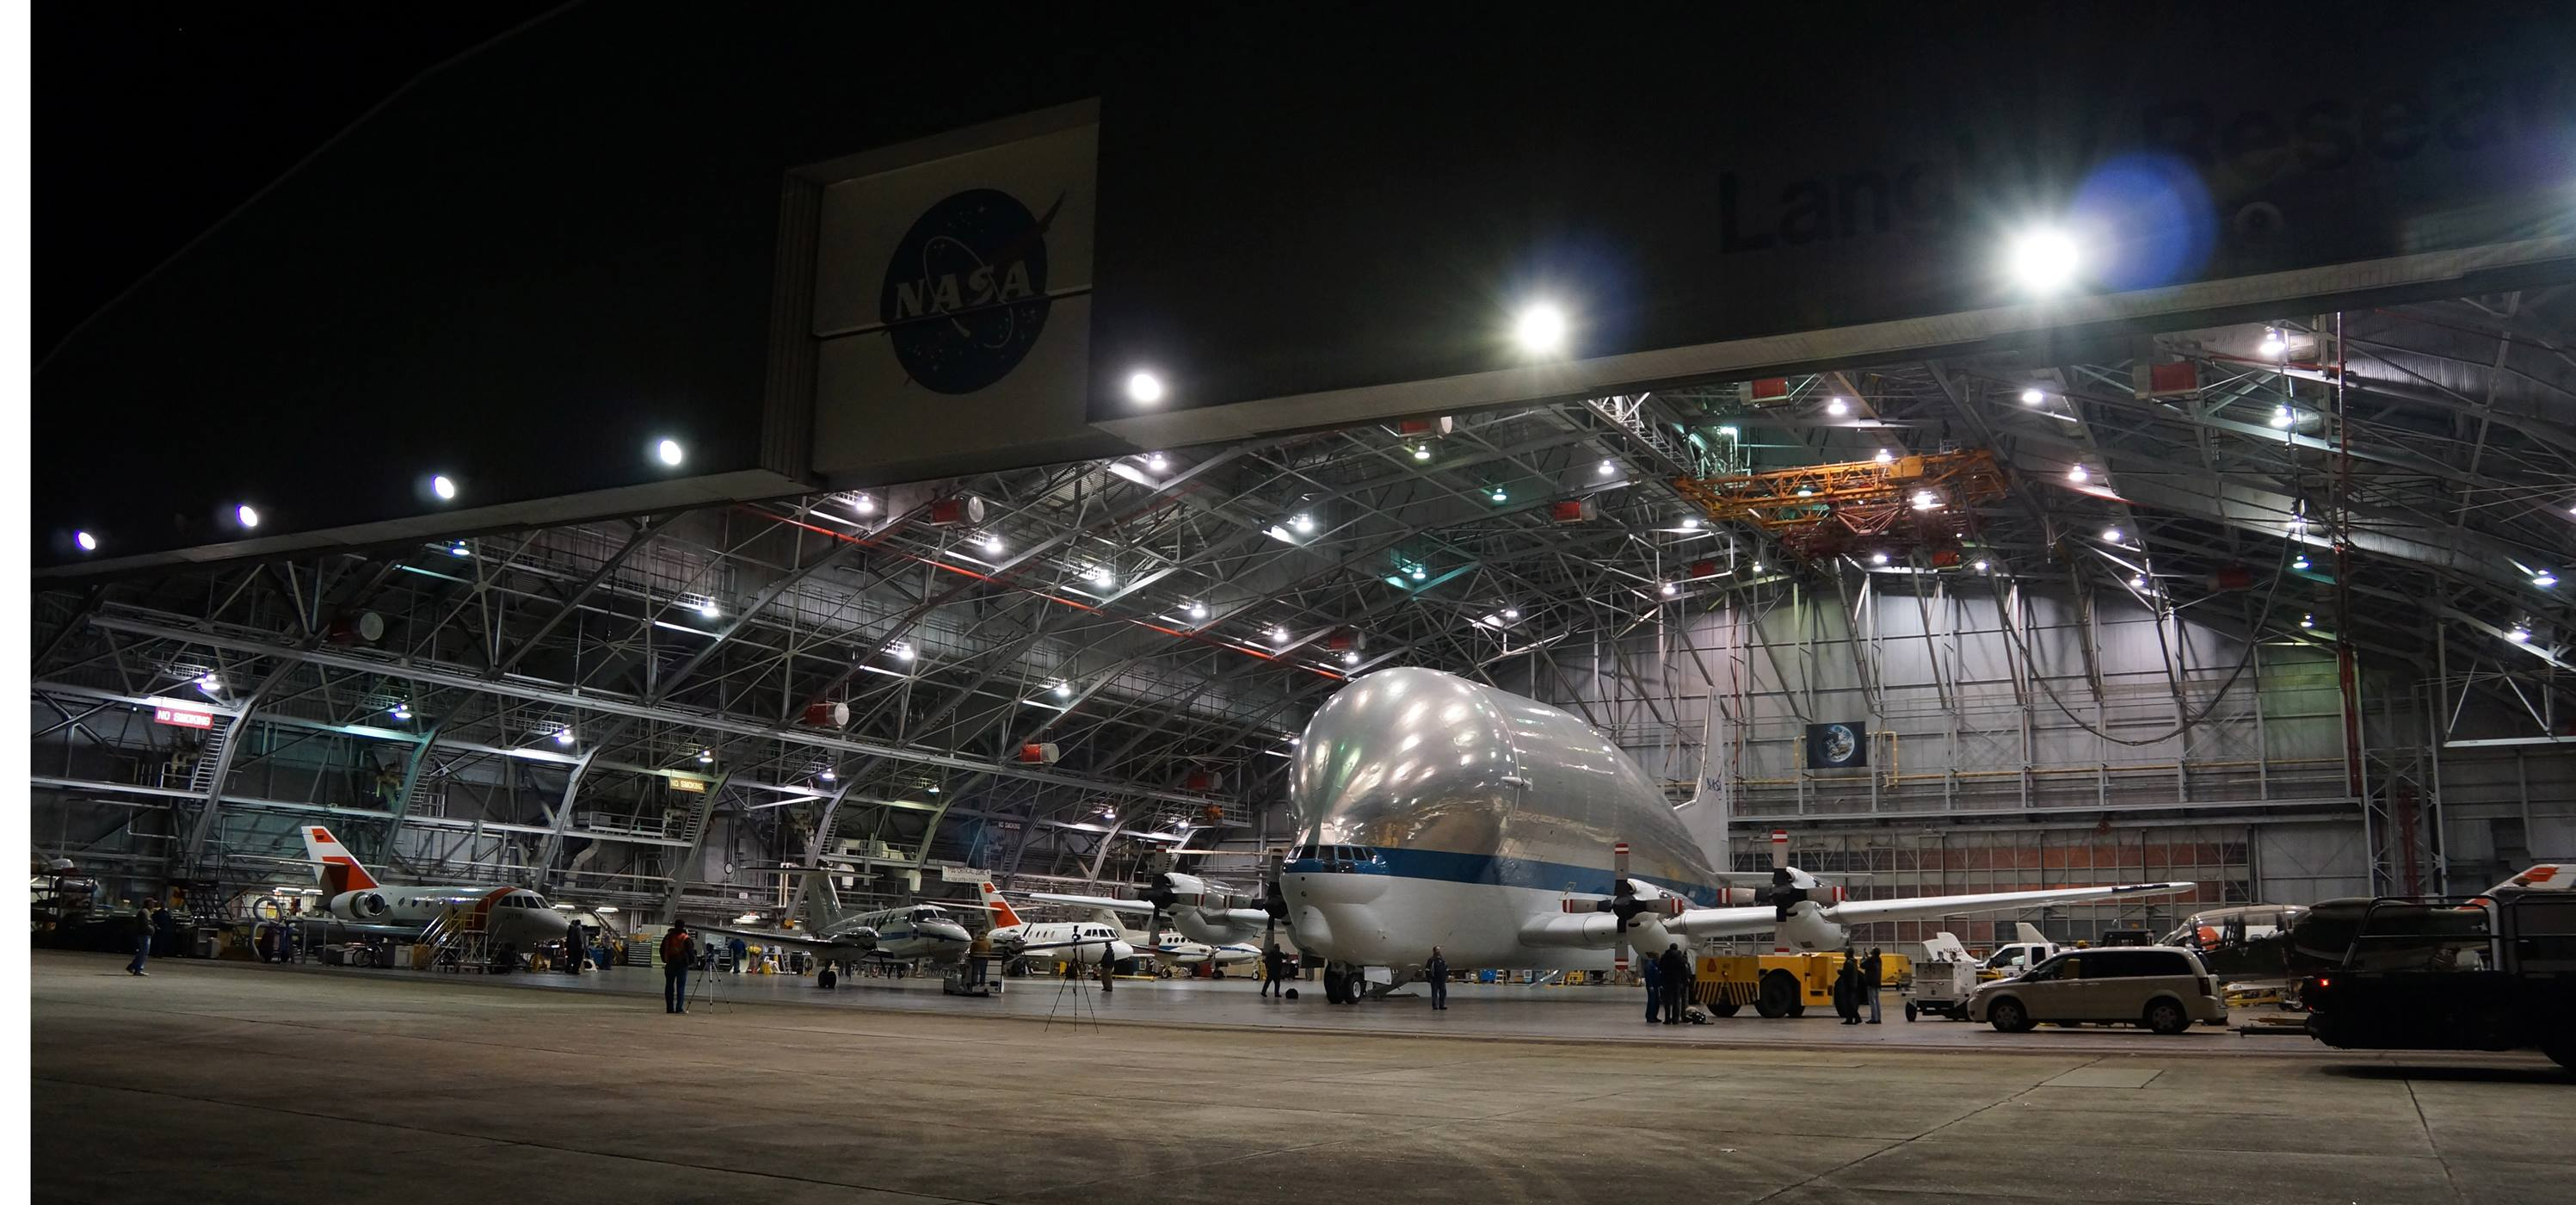 a nasa aircraft in hangar - photo #8